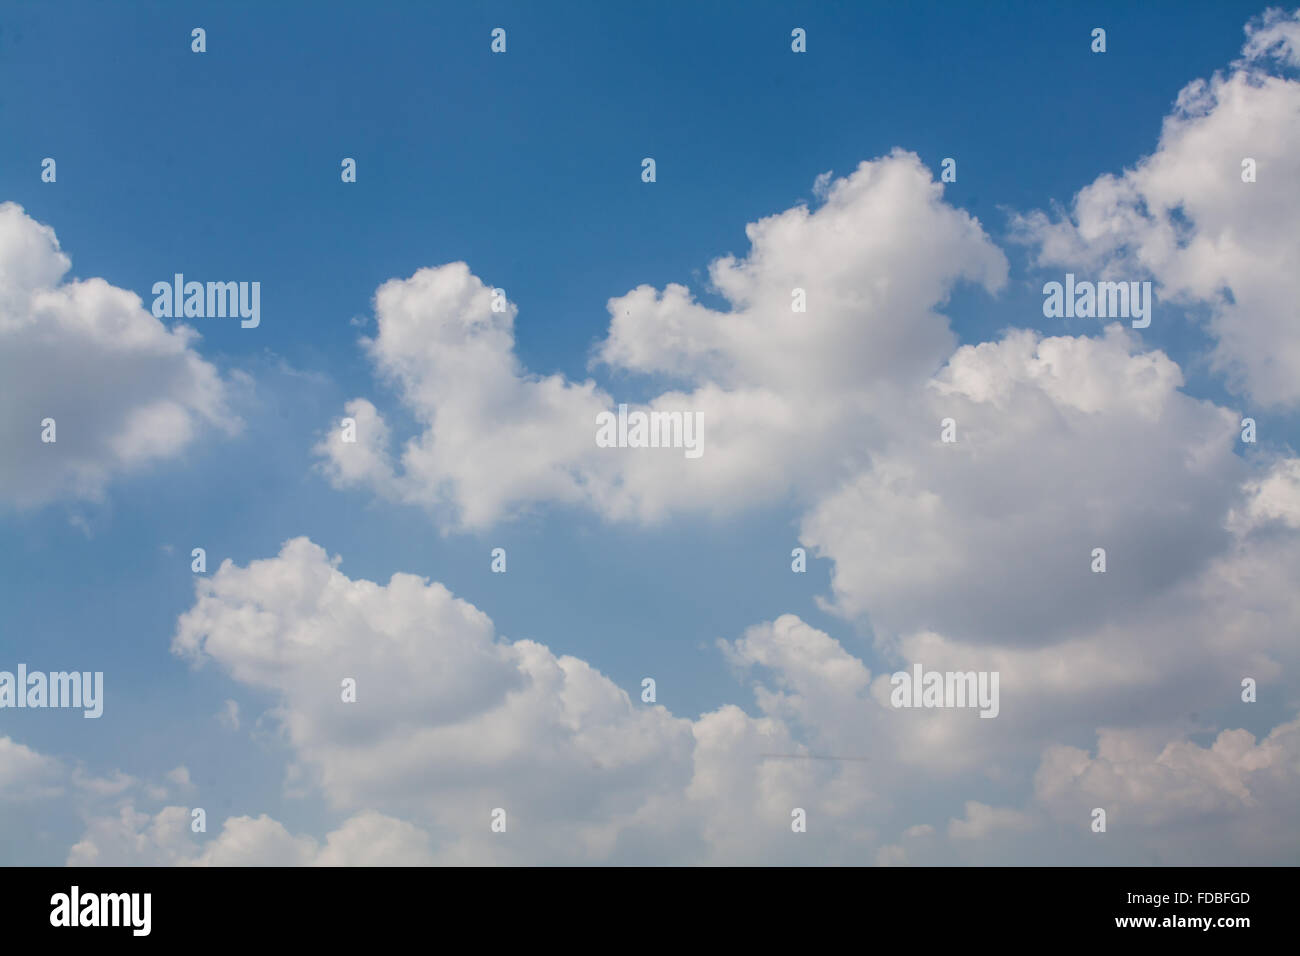 beautiful blue sky with white clouds wallpaper stock photo: 94296061